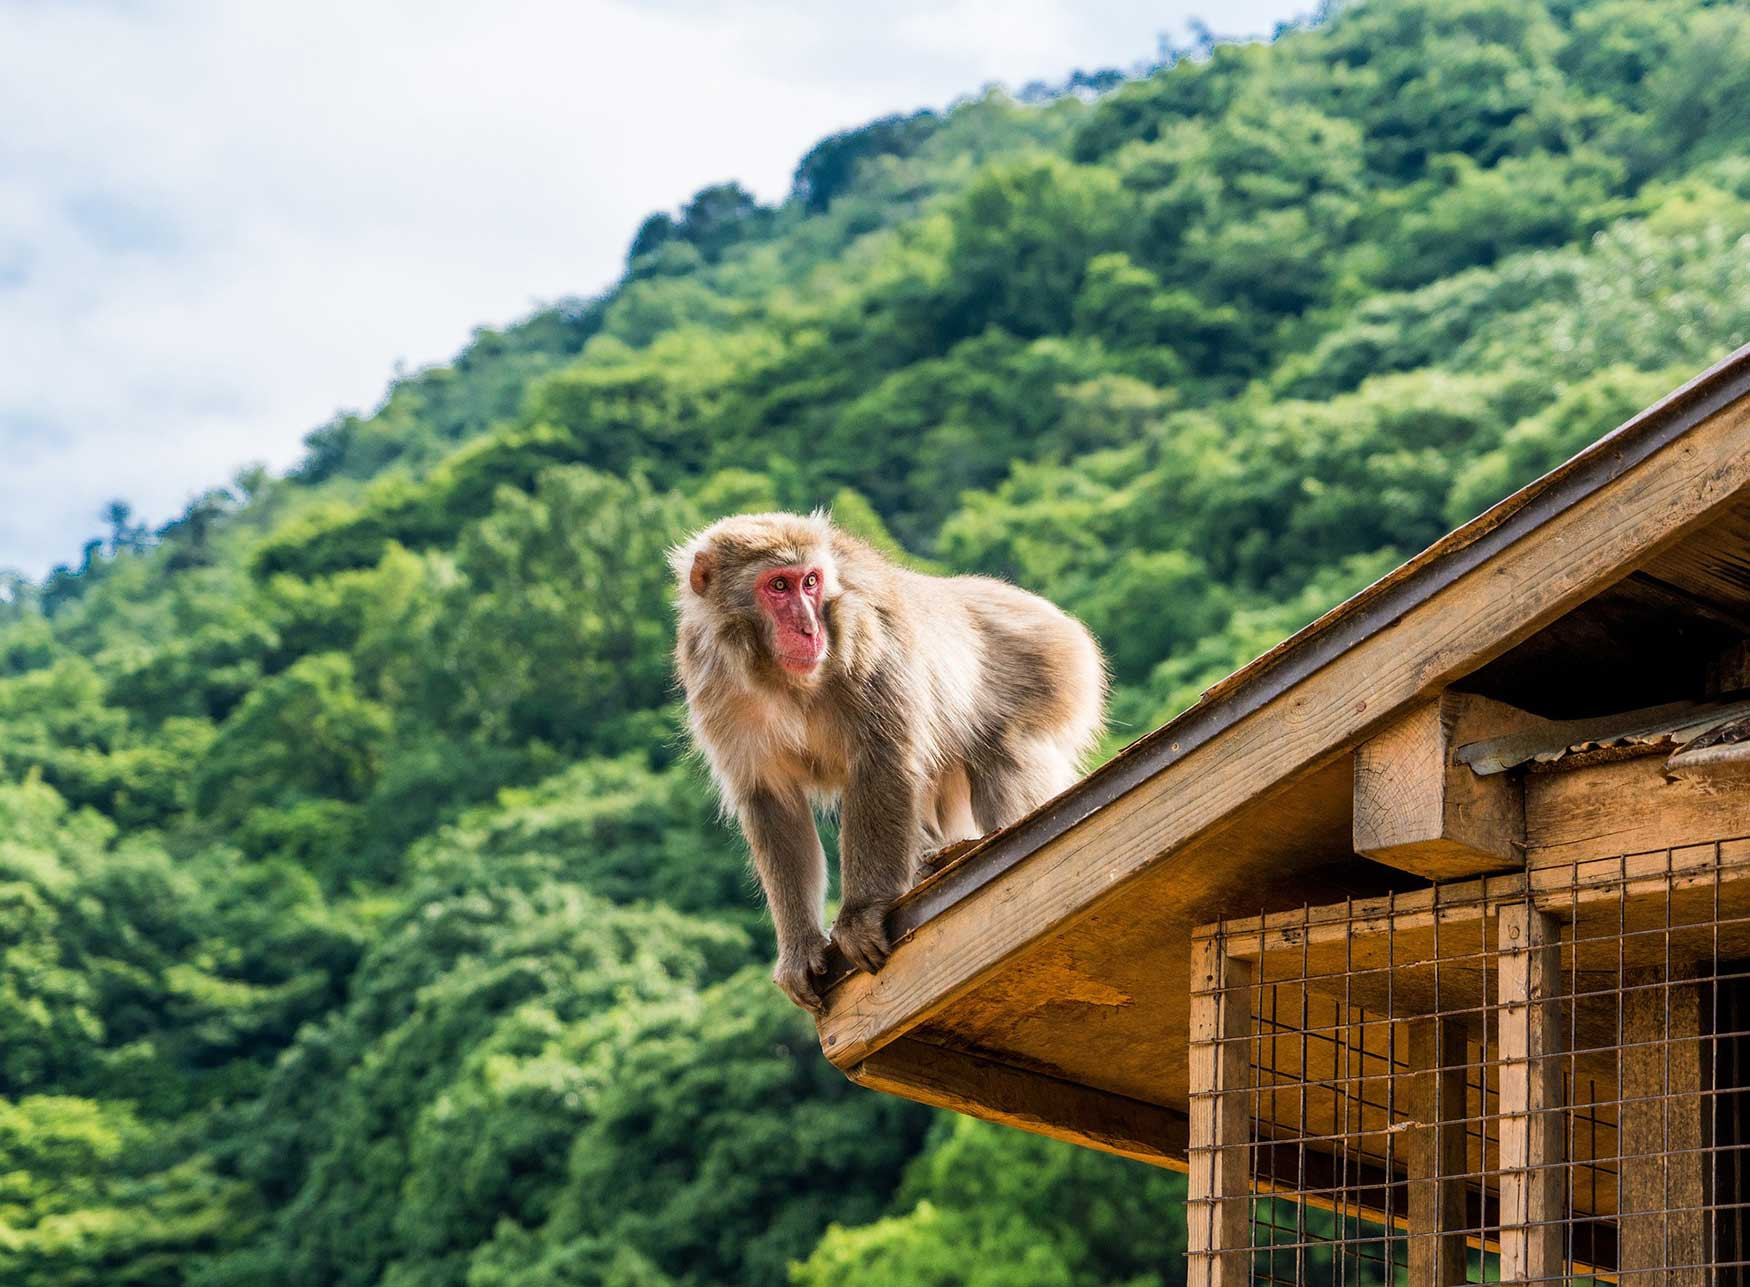 Afternoon Bamboo Forest & Monkey Tour